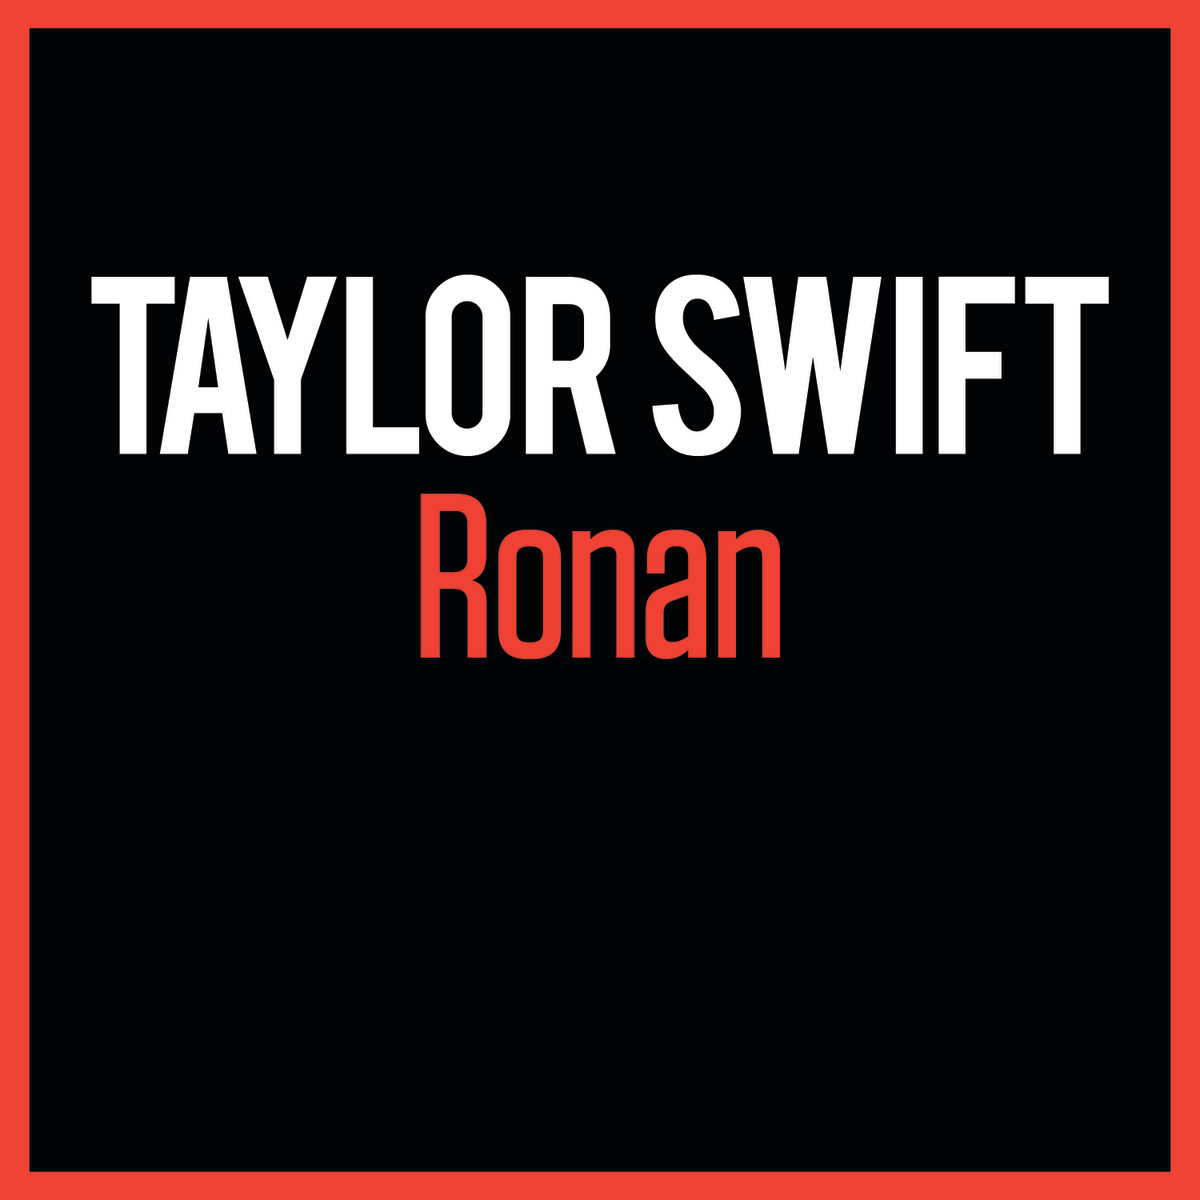 Ronan by Taylor Swift (Big Machine Records, 2012)